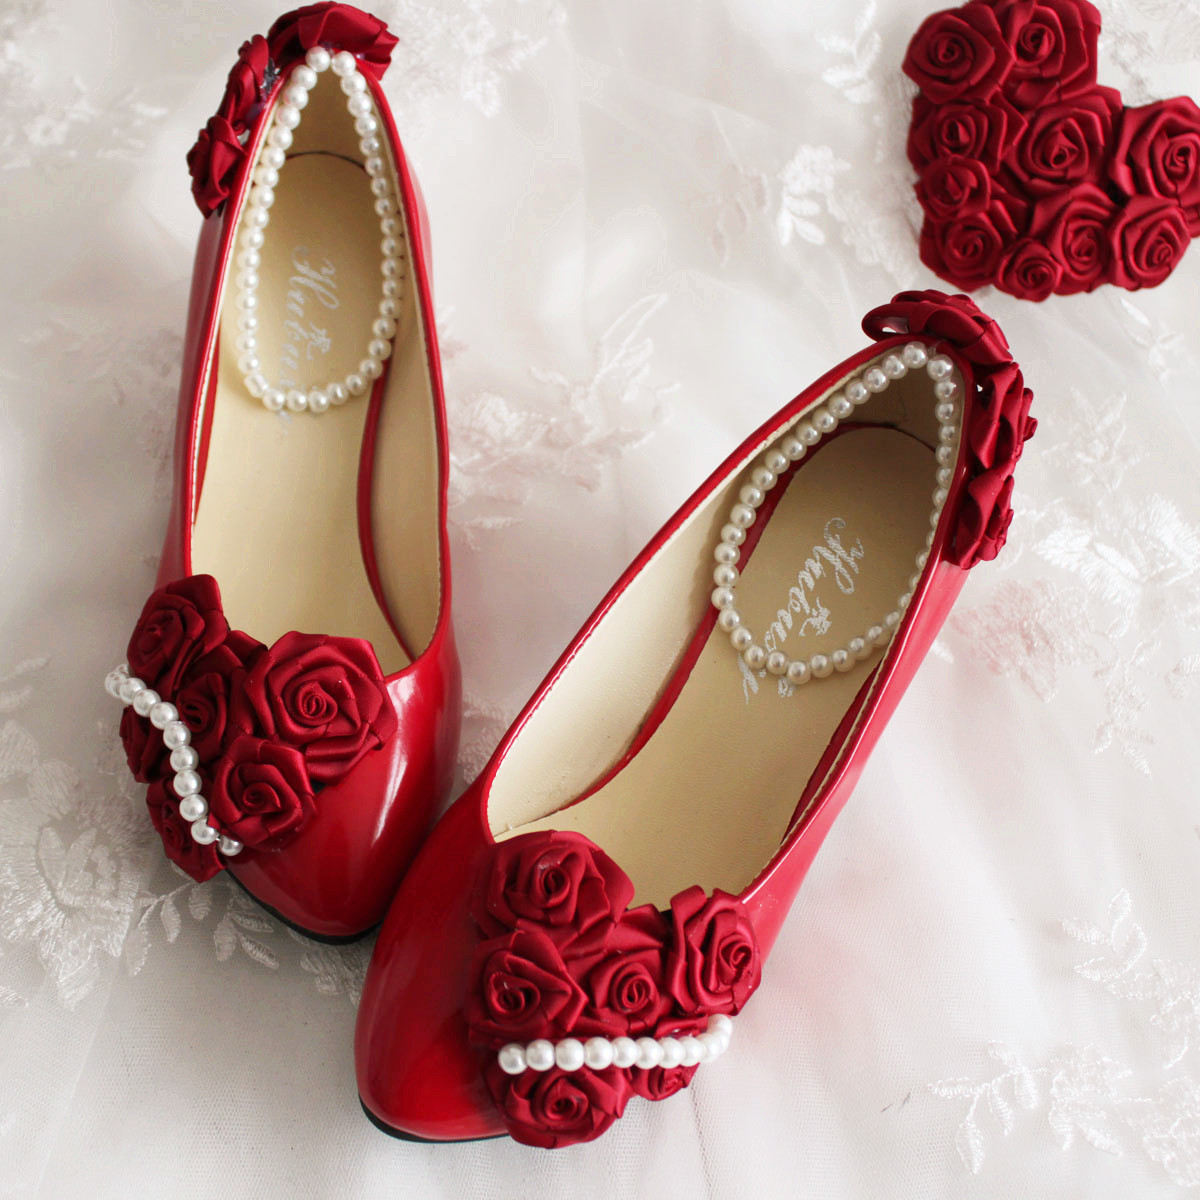 Aesthetic bride wedding shoes rose pearl wedding dress for Red dress shoes for wedding